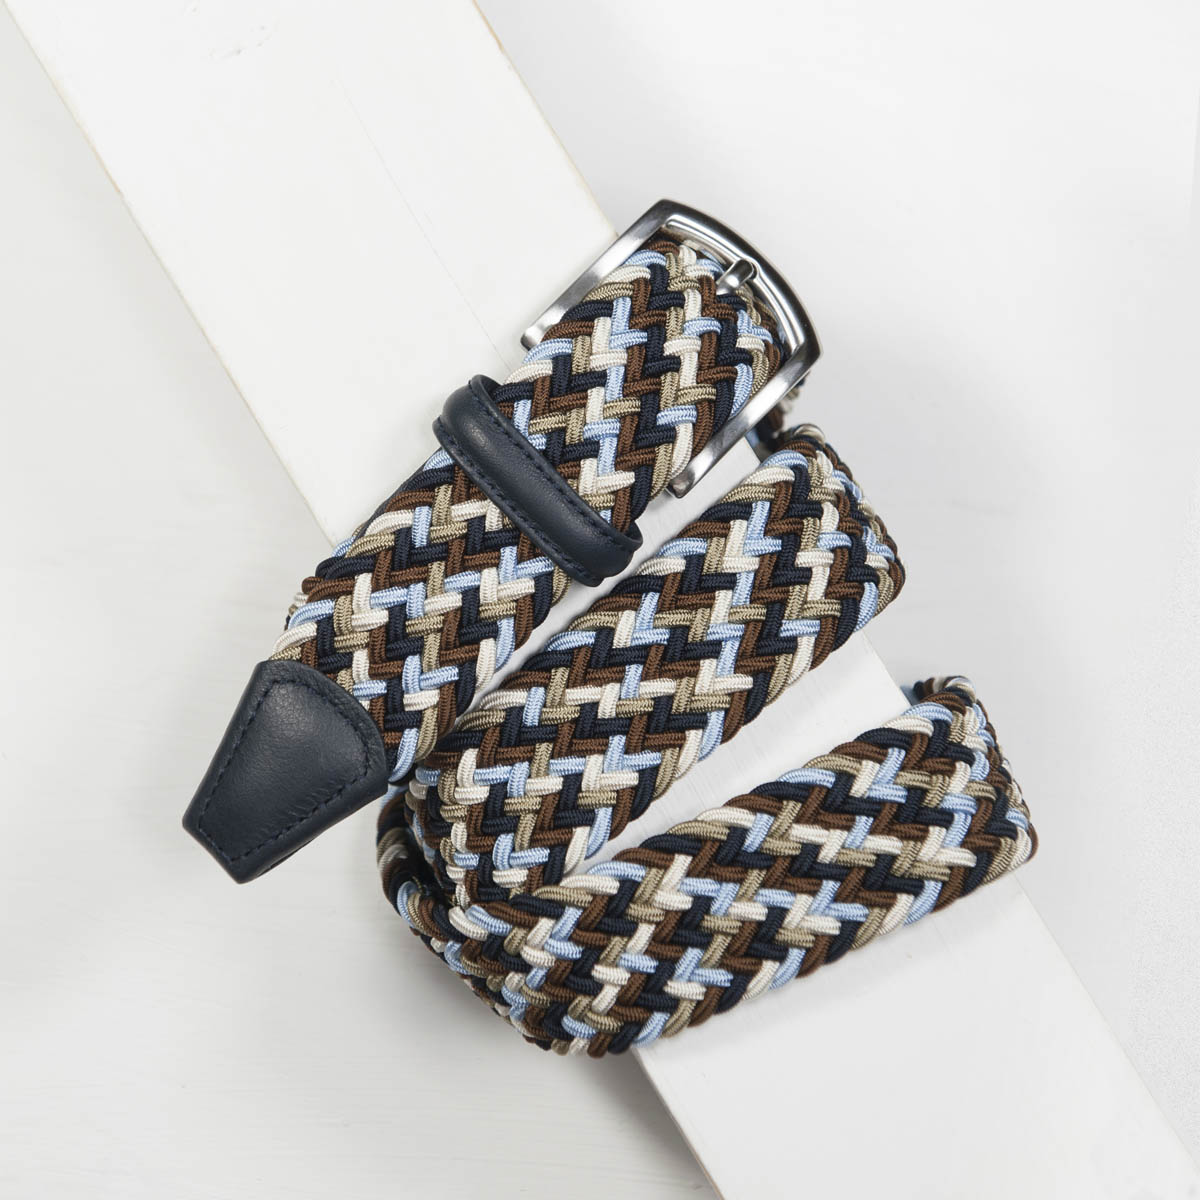 3,5 cm CLASSIC MULTI COLOUR ELASTIC WOVEN BELT NAVY/SKY/TAUPE/CREAM